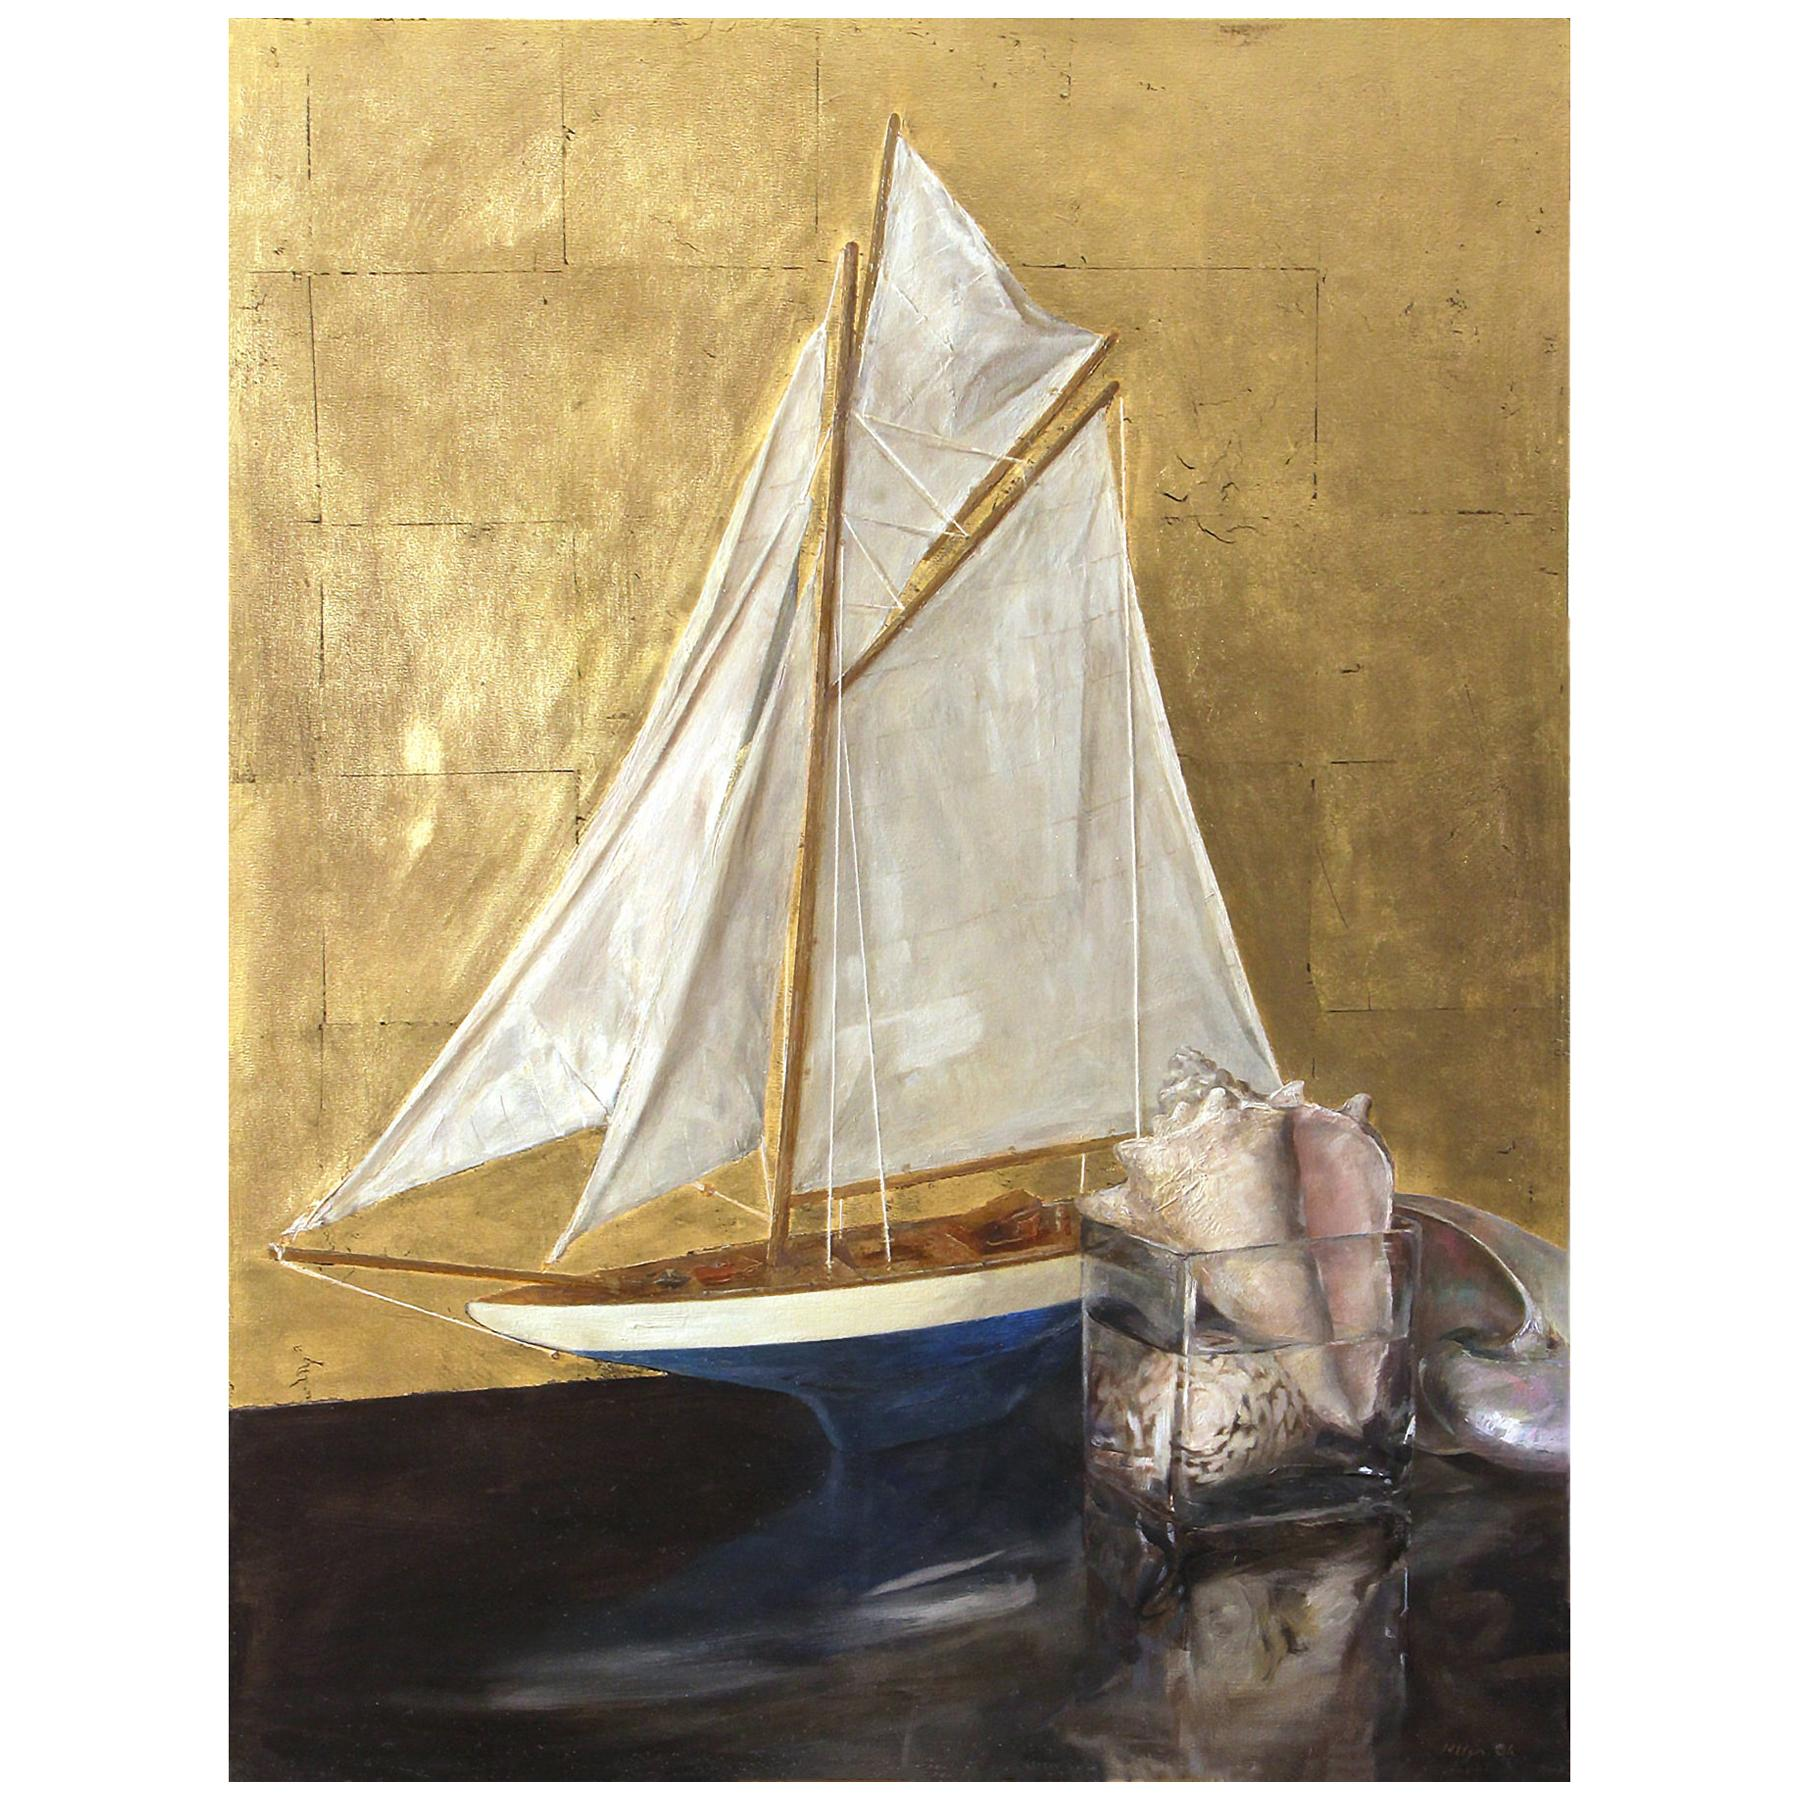 Sail Boat and Nautilus, Model Boat and Sea Shells, Oil and Gold Leaf on Panel